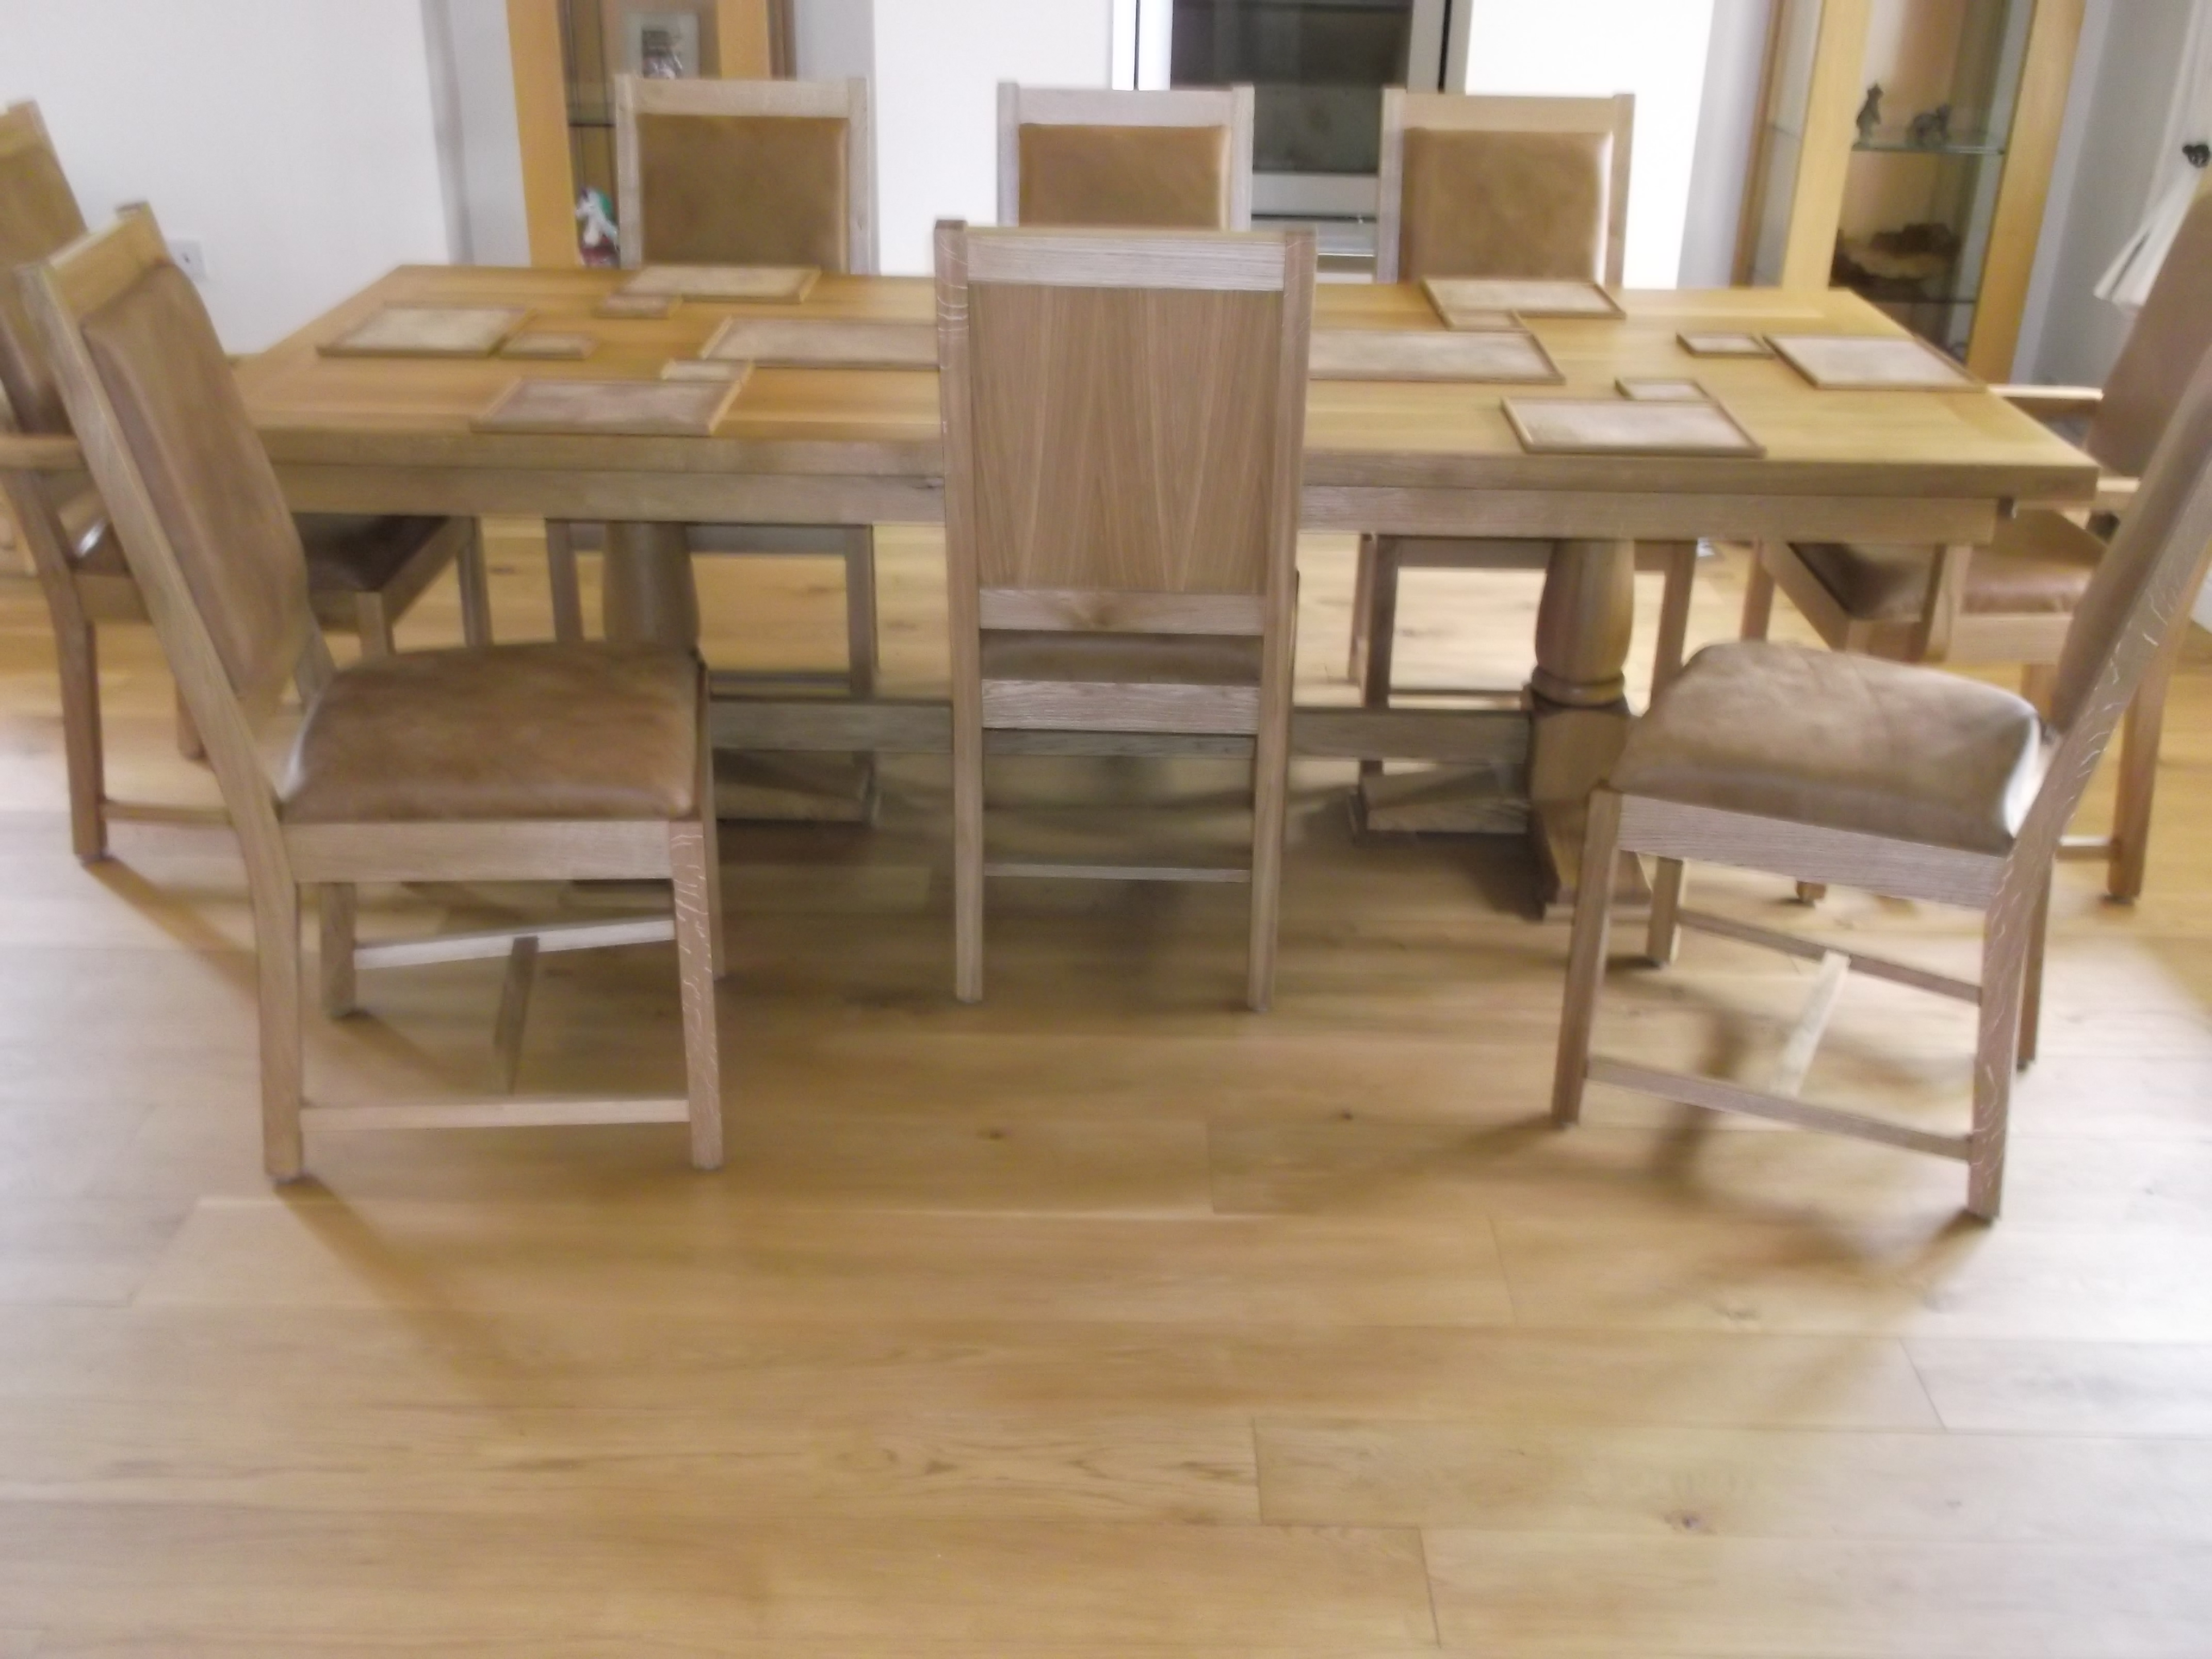 Oak Table And Chairs With Leather Seat Back 2. Full resolution  image, nominally Width 4288 Height 3216 pixels, image with #8C6C3F.